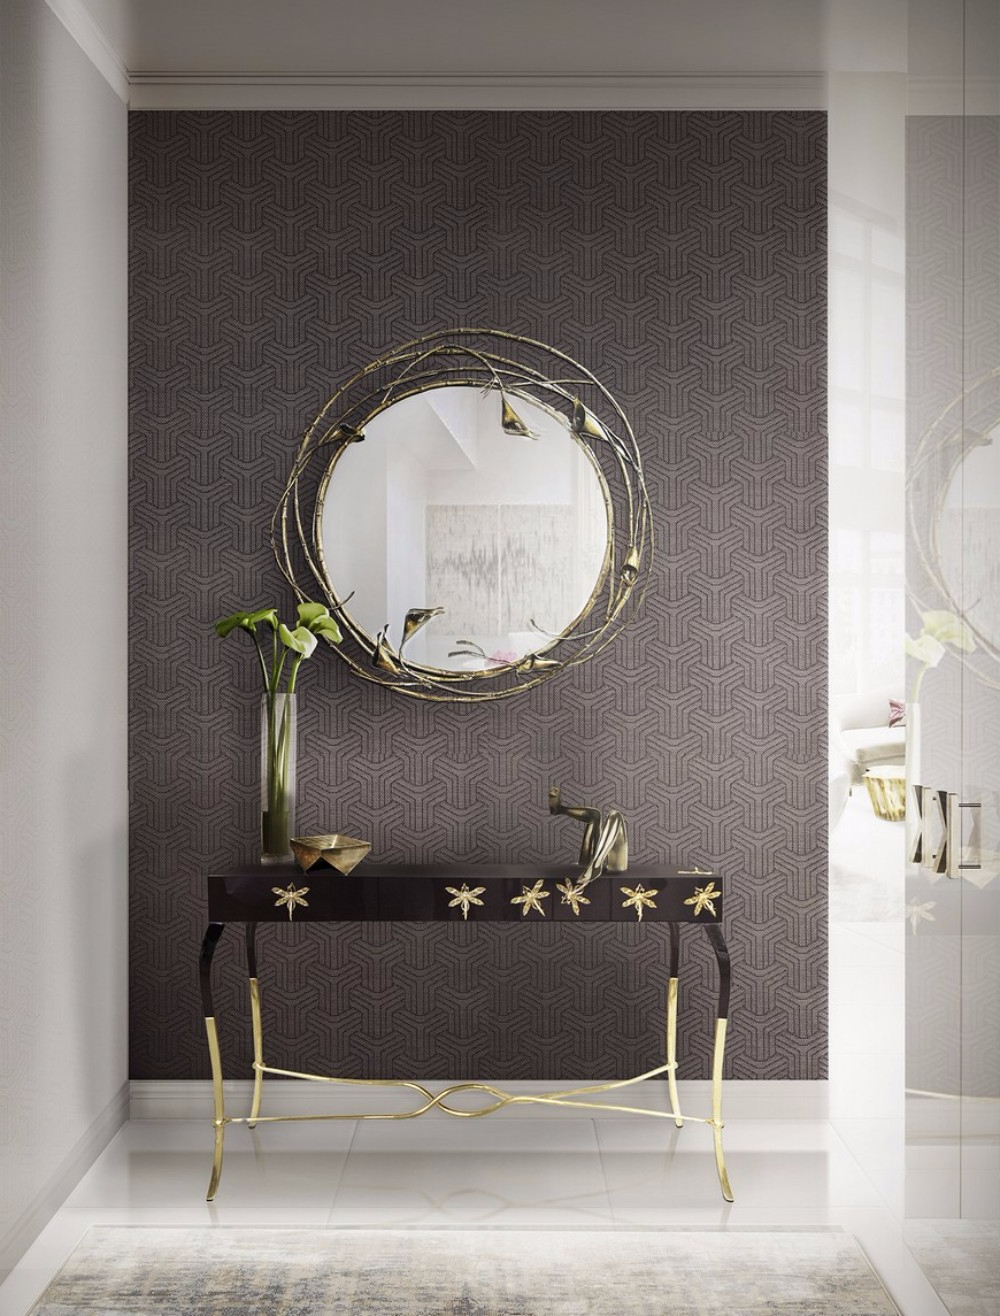 Most Recent Wall Mirror Designs For Living Room With Regard To 20 Exquisite Wall Mirror Designs For Your Living Room (View 5 of 20)